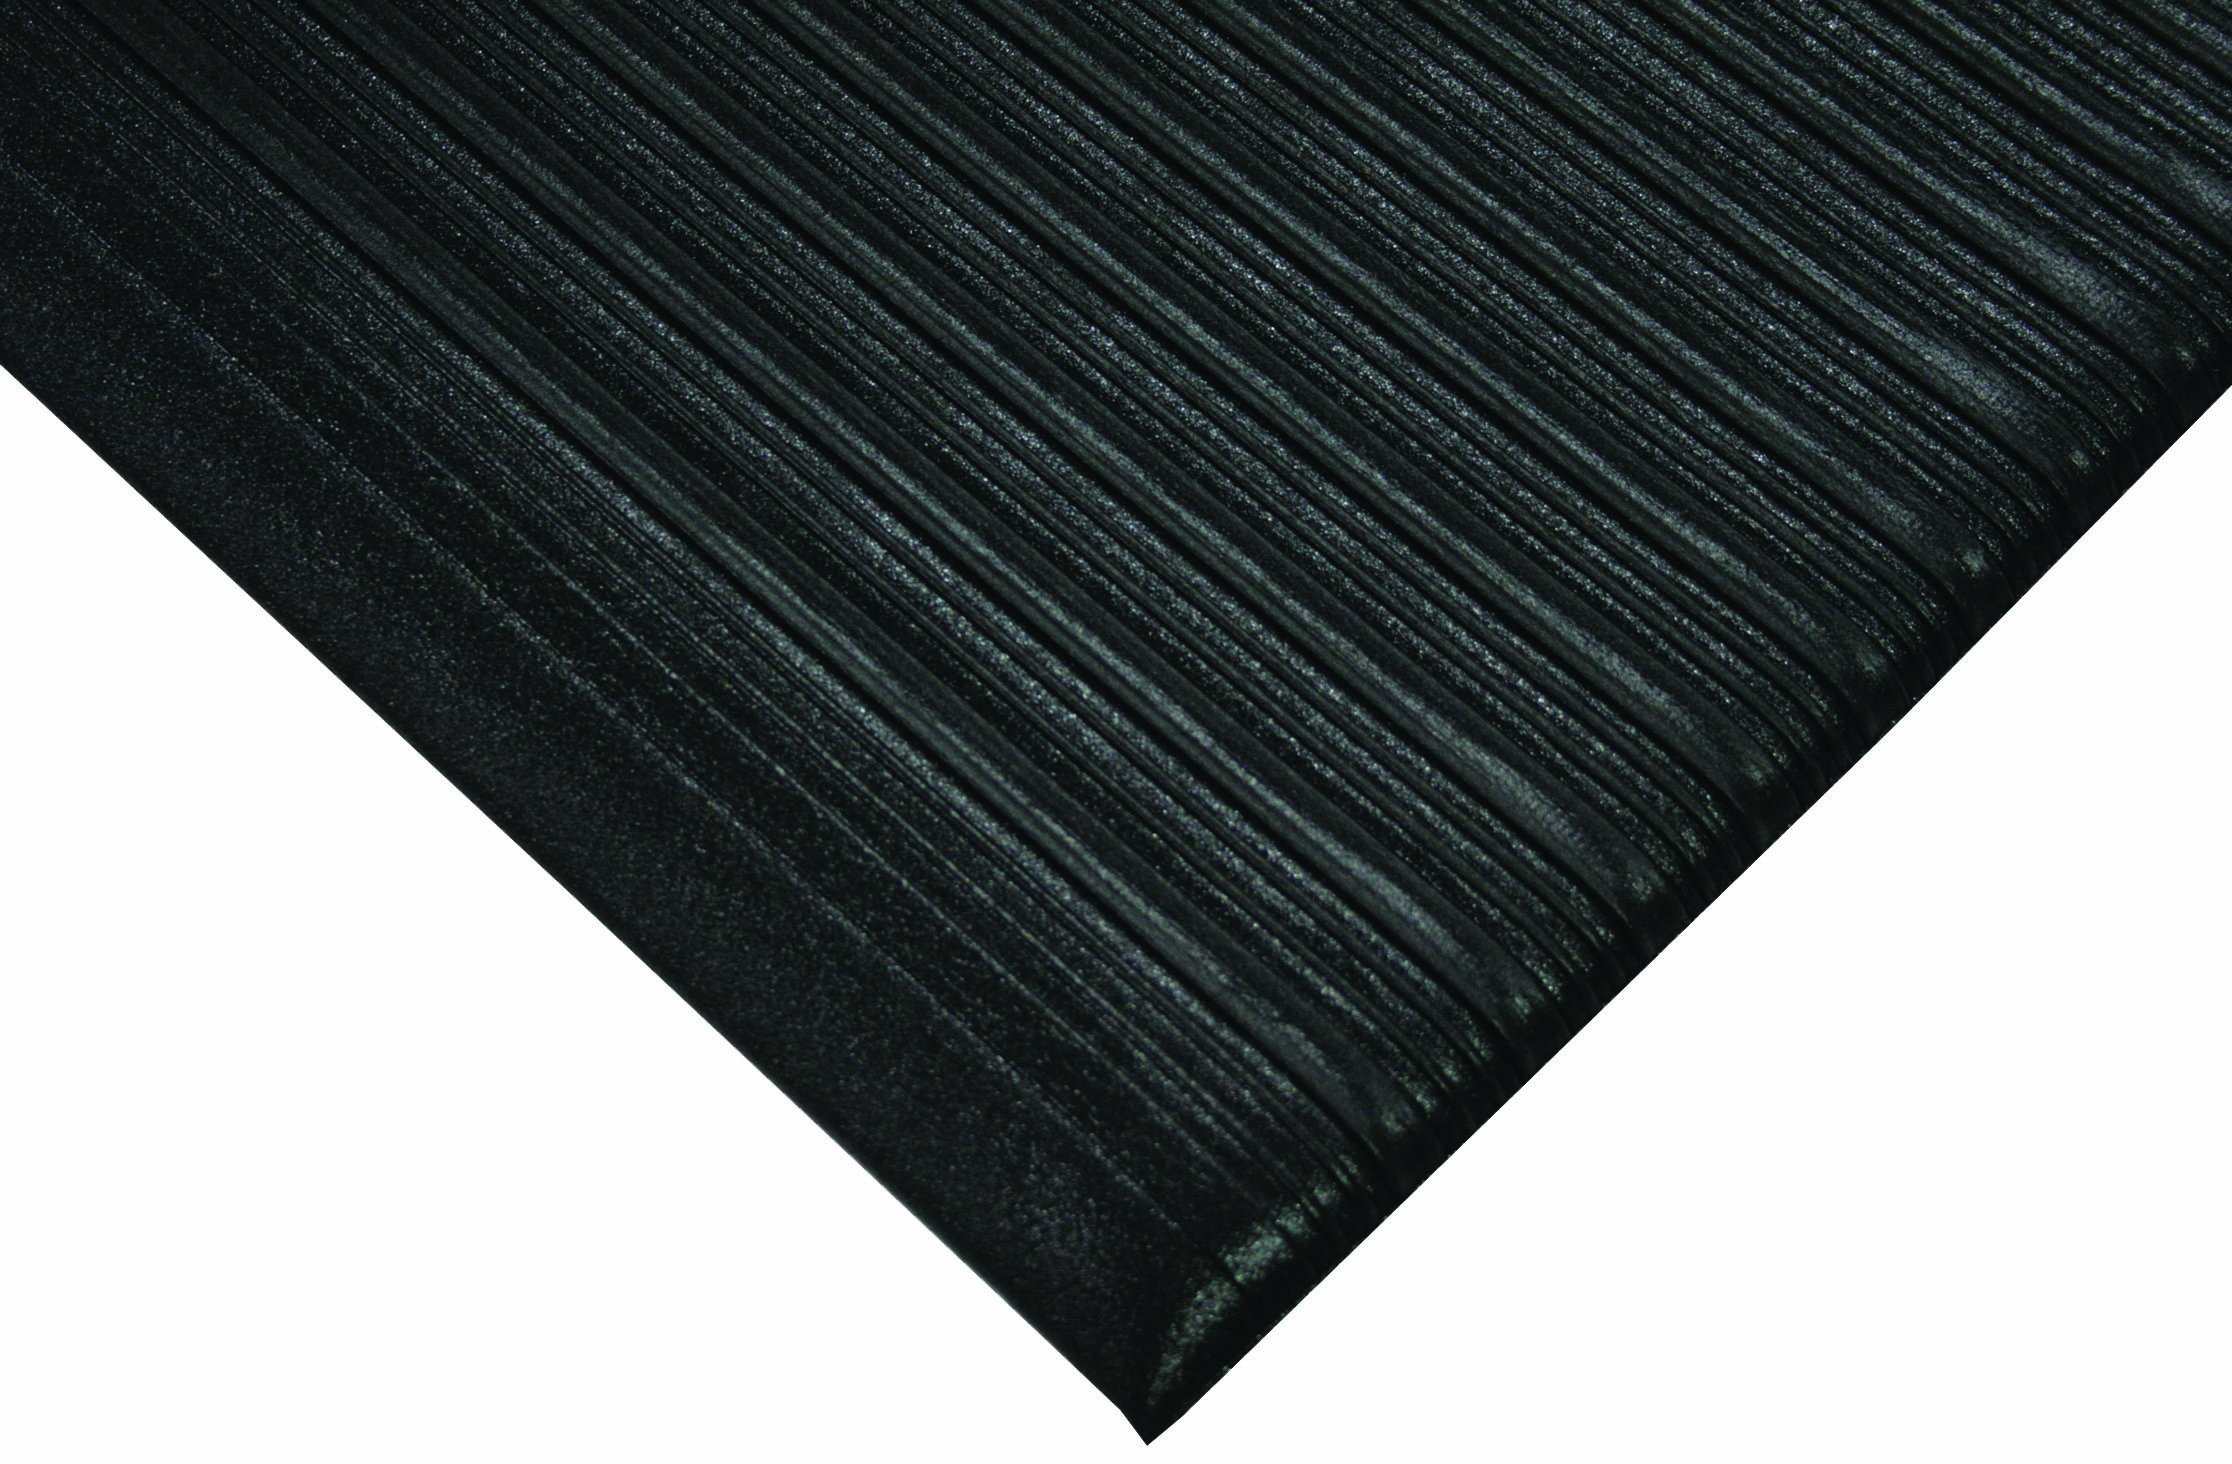 Wearwell PVC 442 Deluxe Tuf Sponge Light Duty Anti-Fatigue Mat, for Dry Areas, 3' Width x 5' Length x 5/8'' Thickness, Black by Wearwell